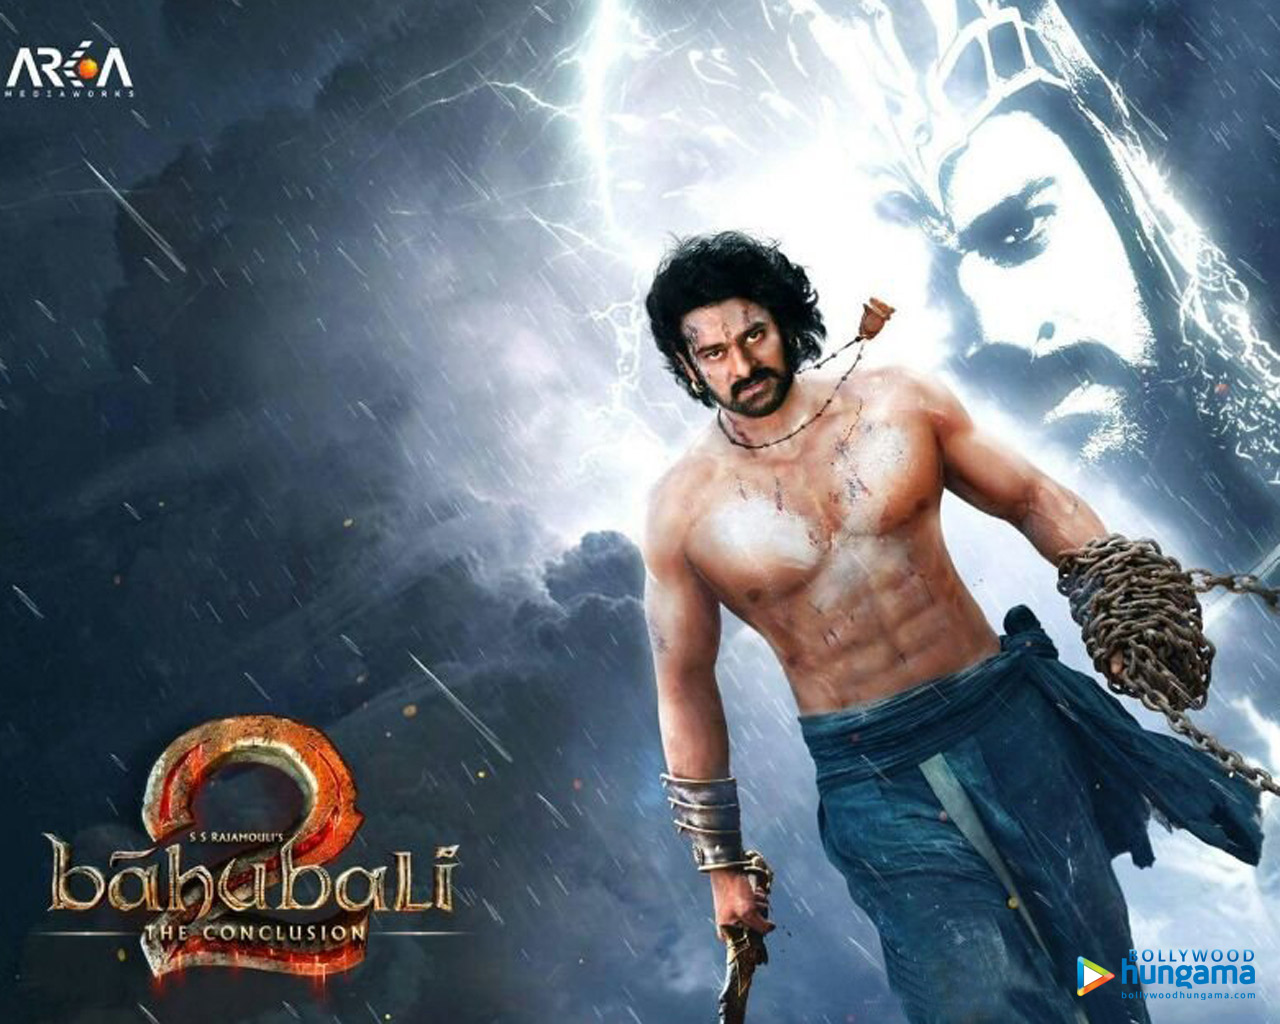 Wallpaper download bahubali -  As Wallpaper